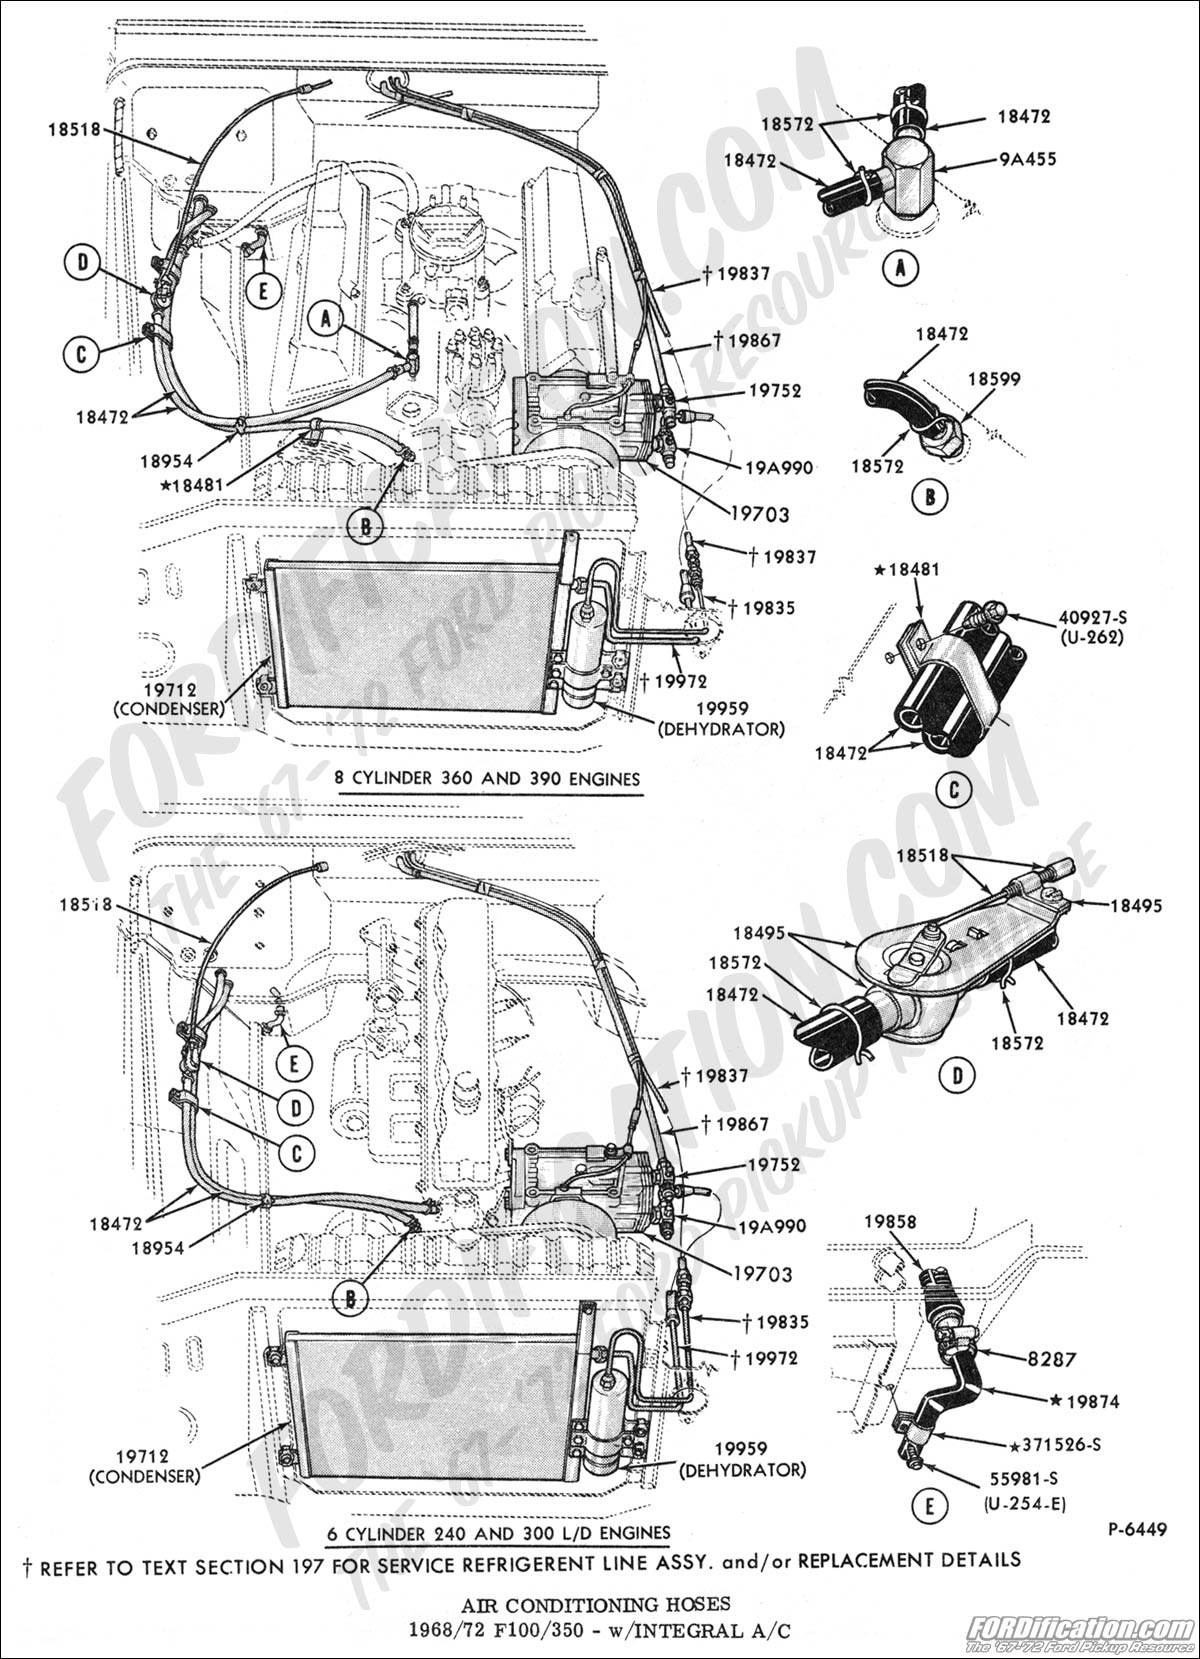 Honda Pressure Washer Parts further 94 Accord Fuel Filter Replacement together with Transmission Line On A Car furthermore 1995 Subaru Wiring Diagram further Nissan Altima Evaporator Drain Location. on subaru legacy fuel filter